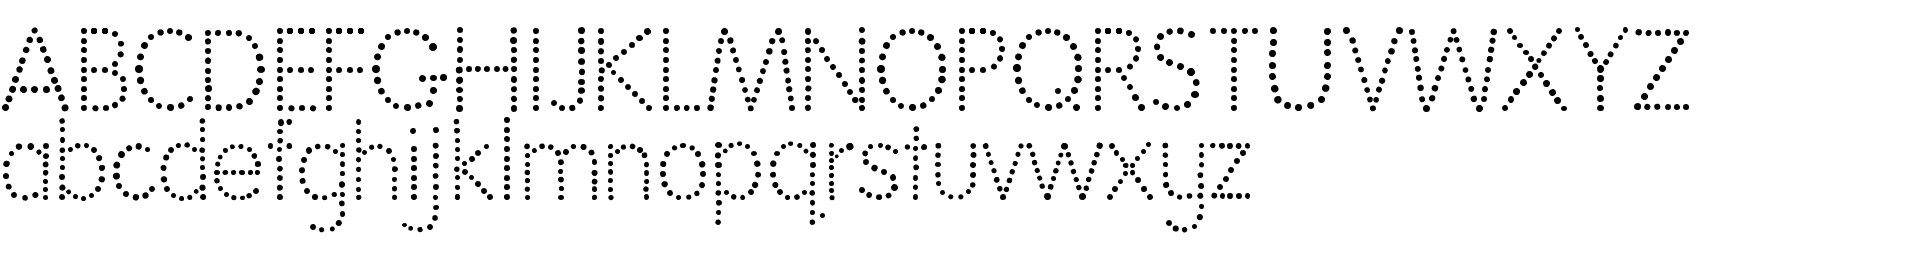 National First Font Dotted